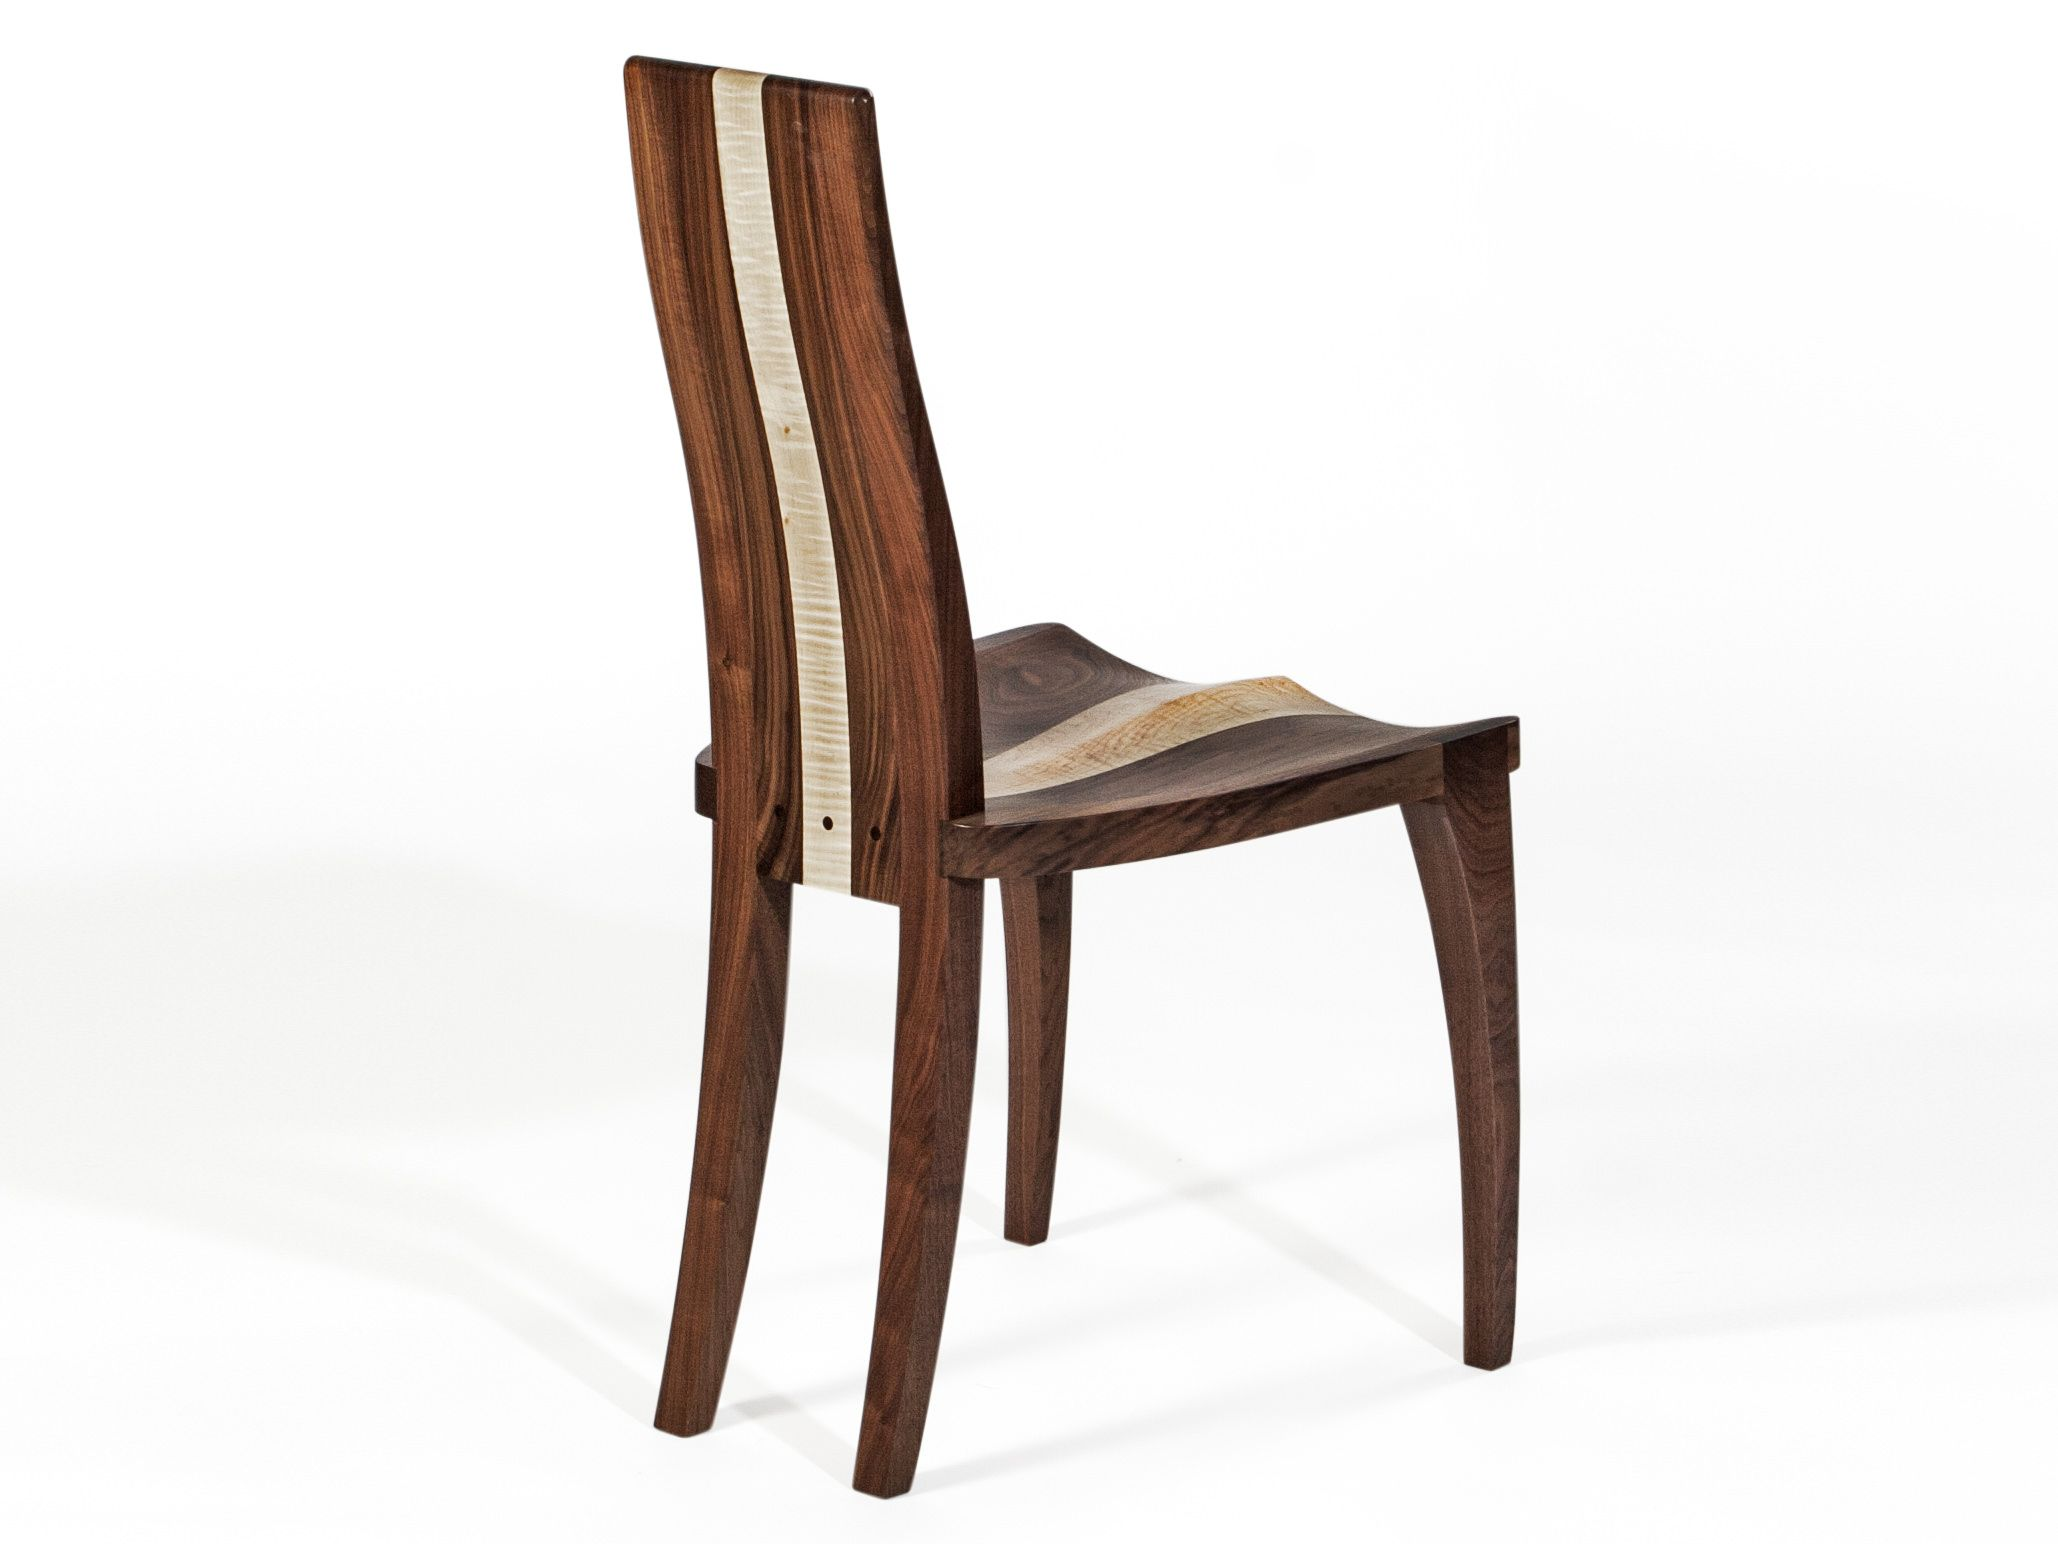 Custom Made Dining Chairs Modern, Solid Wood, Handmade ...